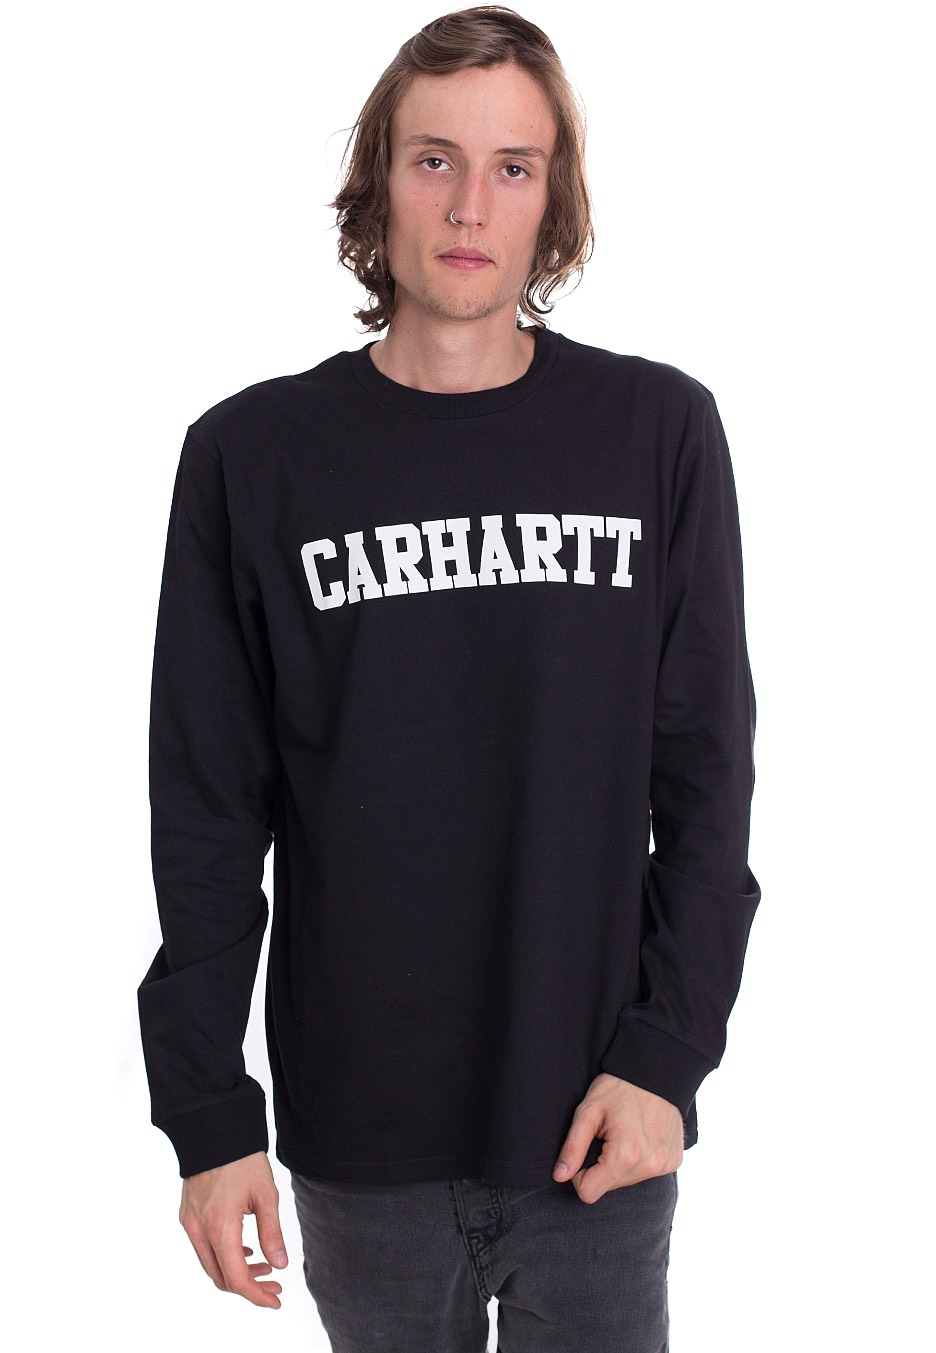 ded08d2e5cb3 Carhartt WIP - College Black/White - Longsleeve - Streetwear Shop -  Impericon.com UK